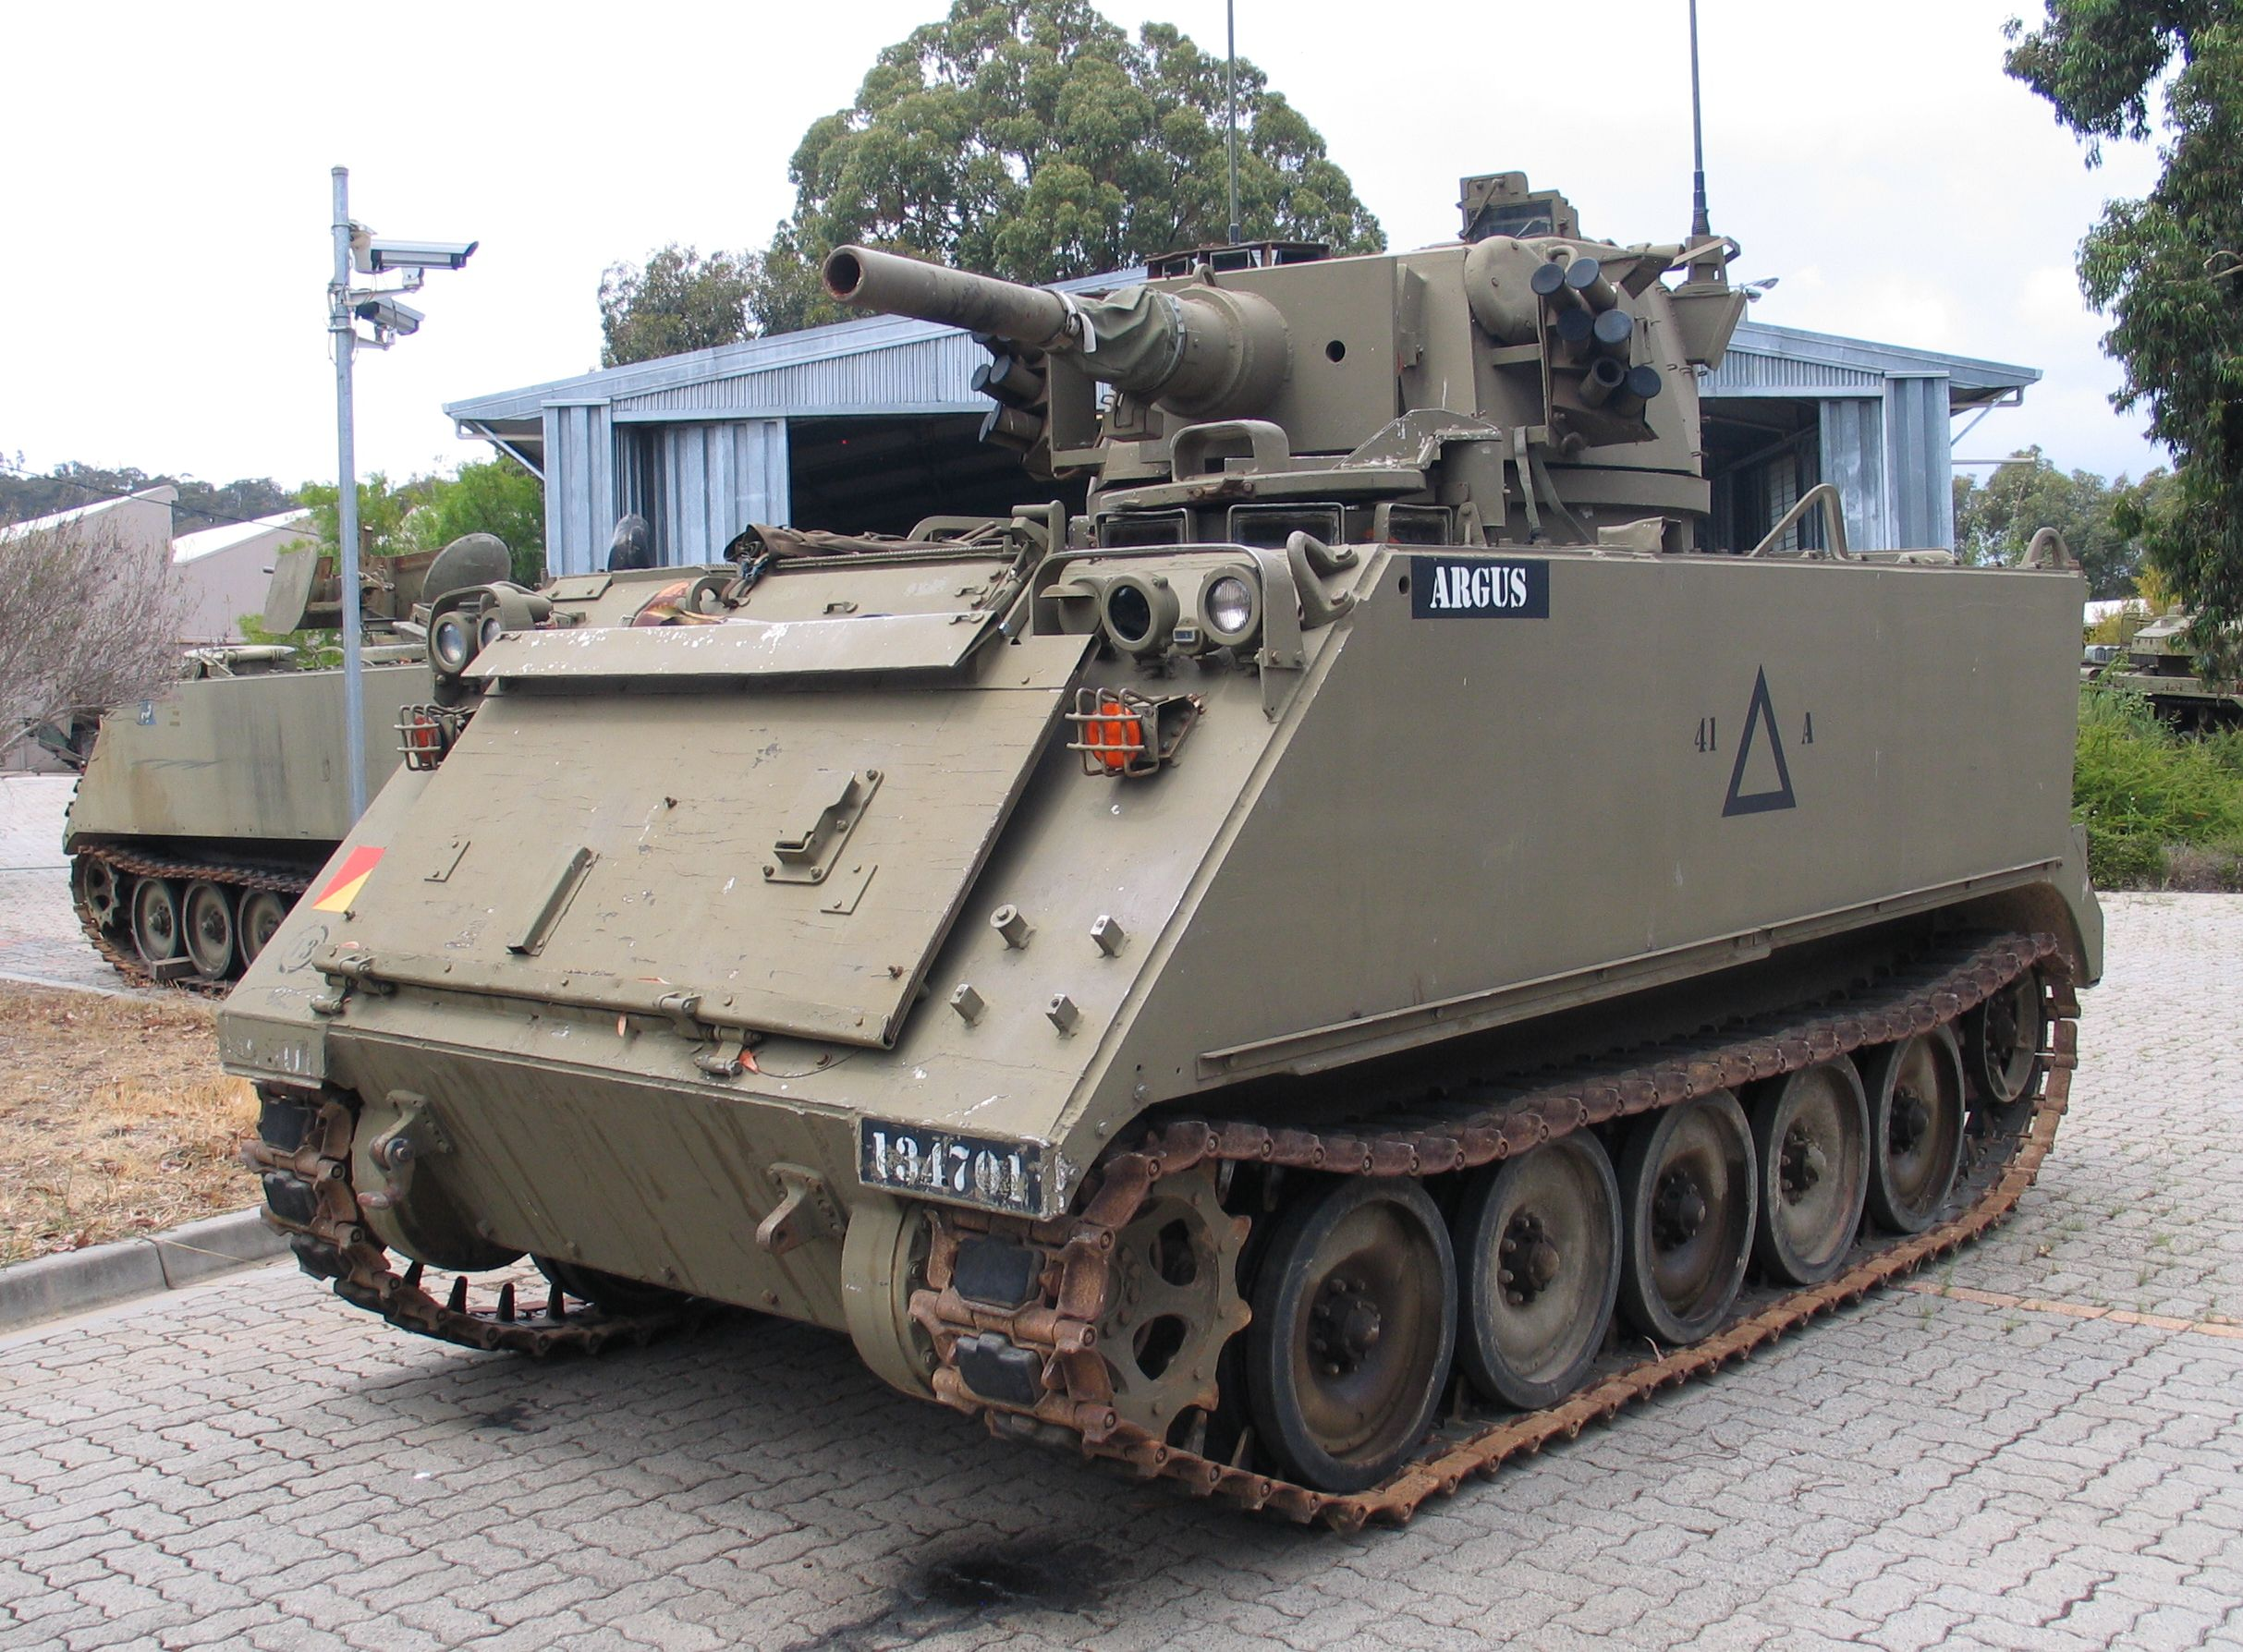 Army Tank For Sale Usa >> File:Puckapunyal-M113-FSV-3-1.jpg - Wikimedia Commons